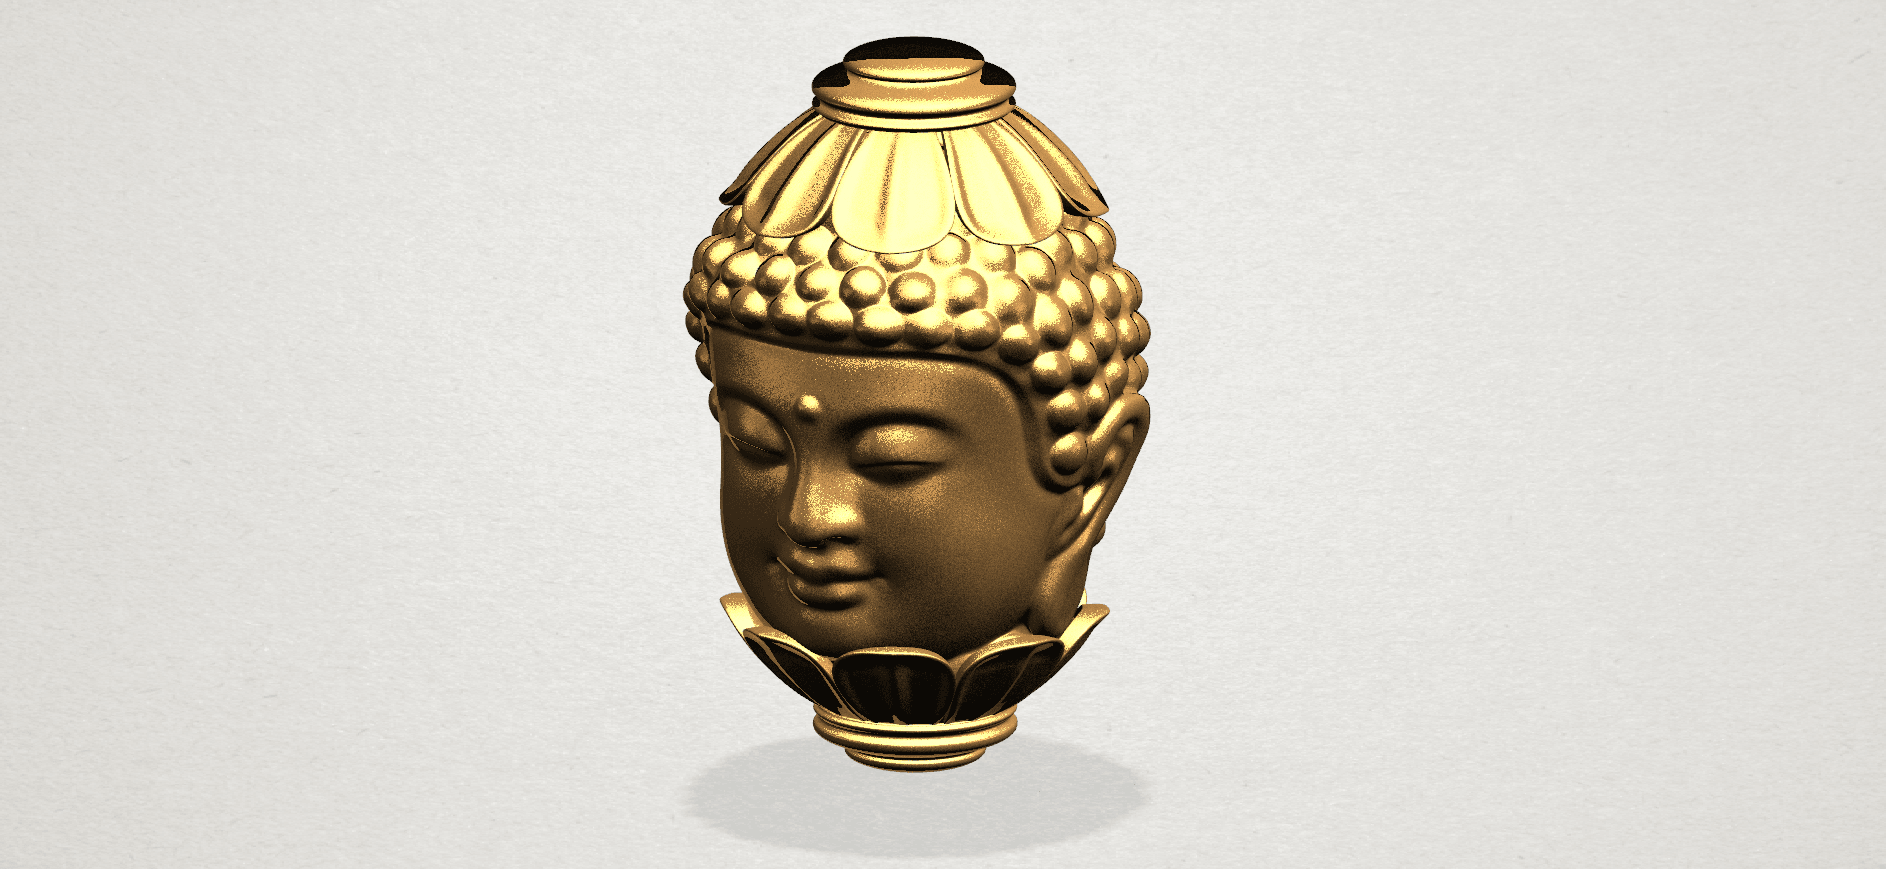 Buddha - Head Sculpture 80mm -A01.png Download free STL file Buddha - Head Sculpture • 3D printing model, GeorgesNikkei